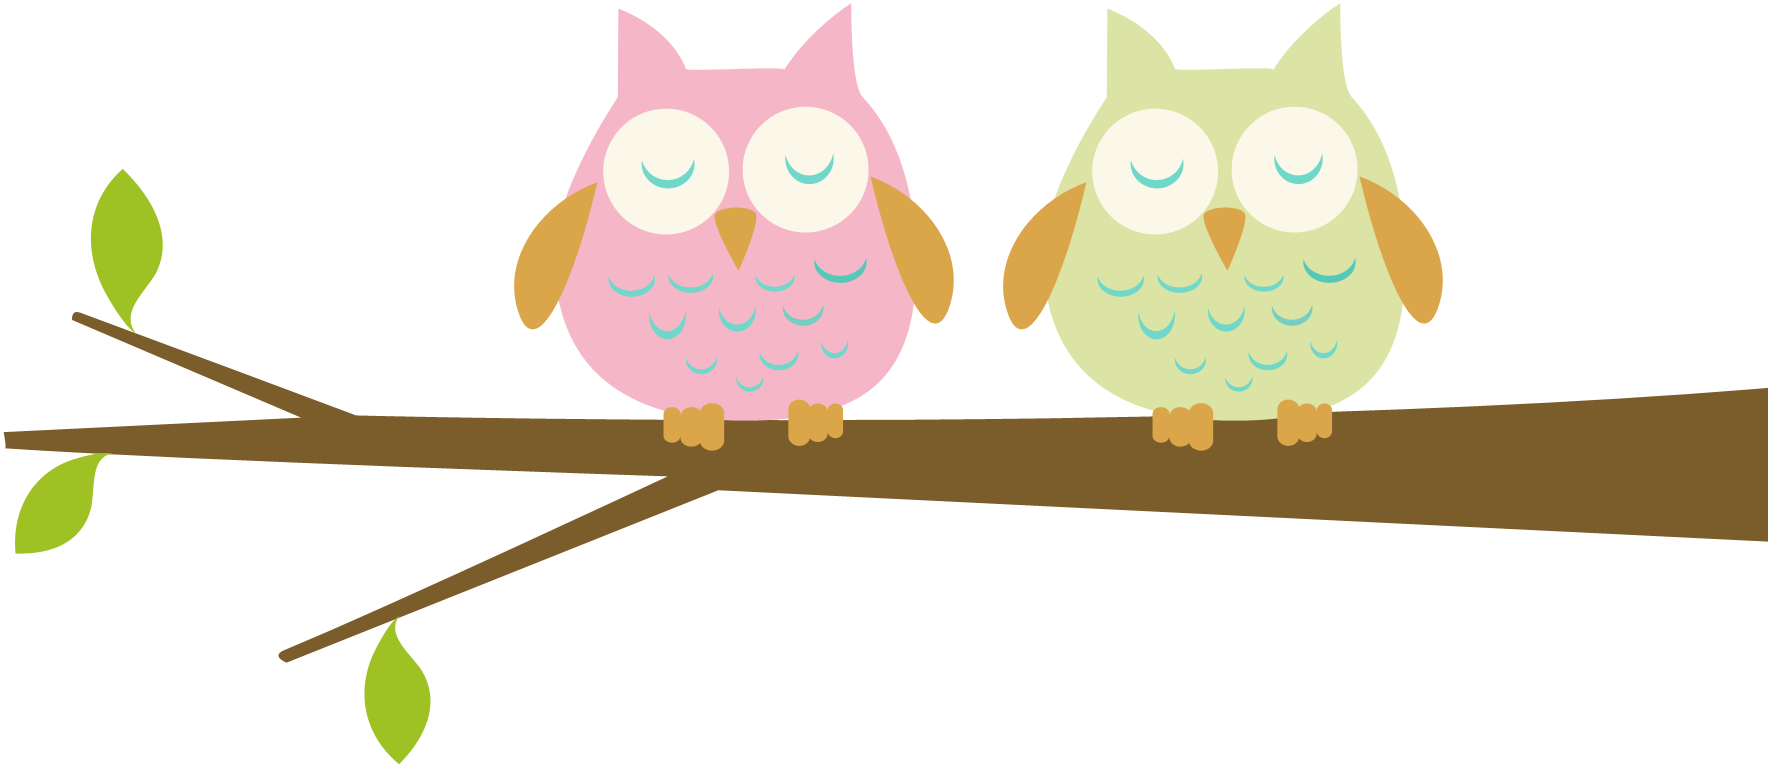 Owlet clipart friend Photo#18 clipart Owls Owls purple